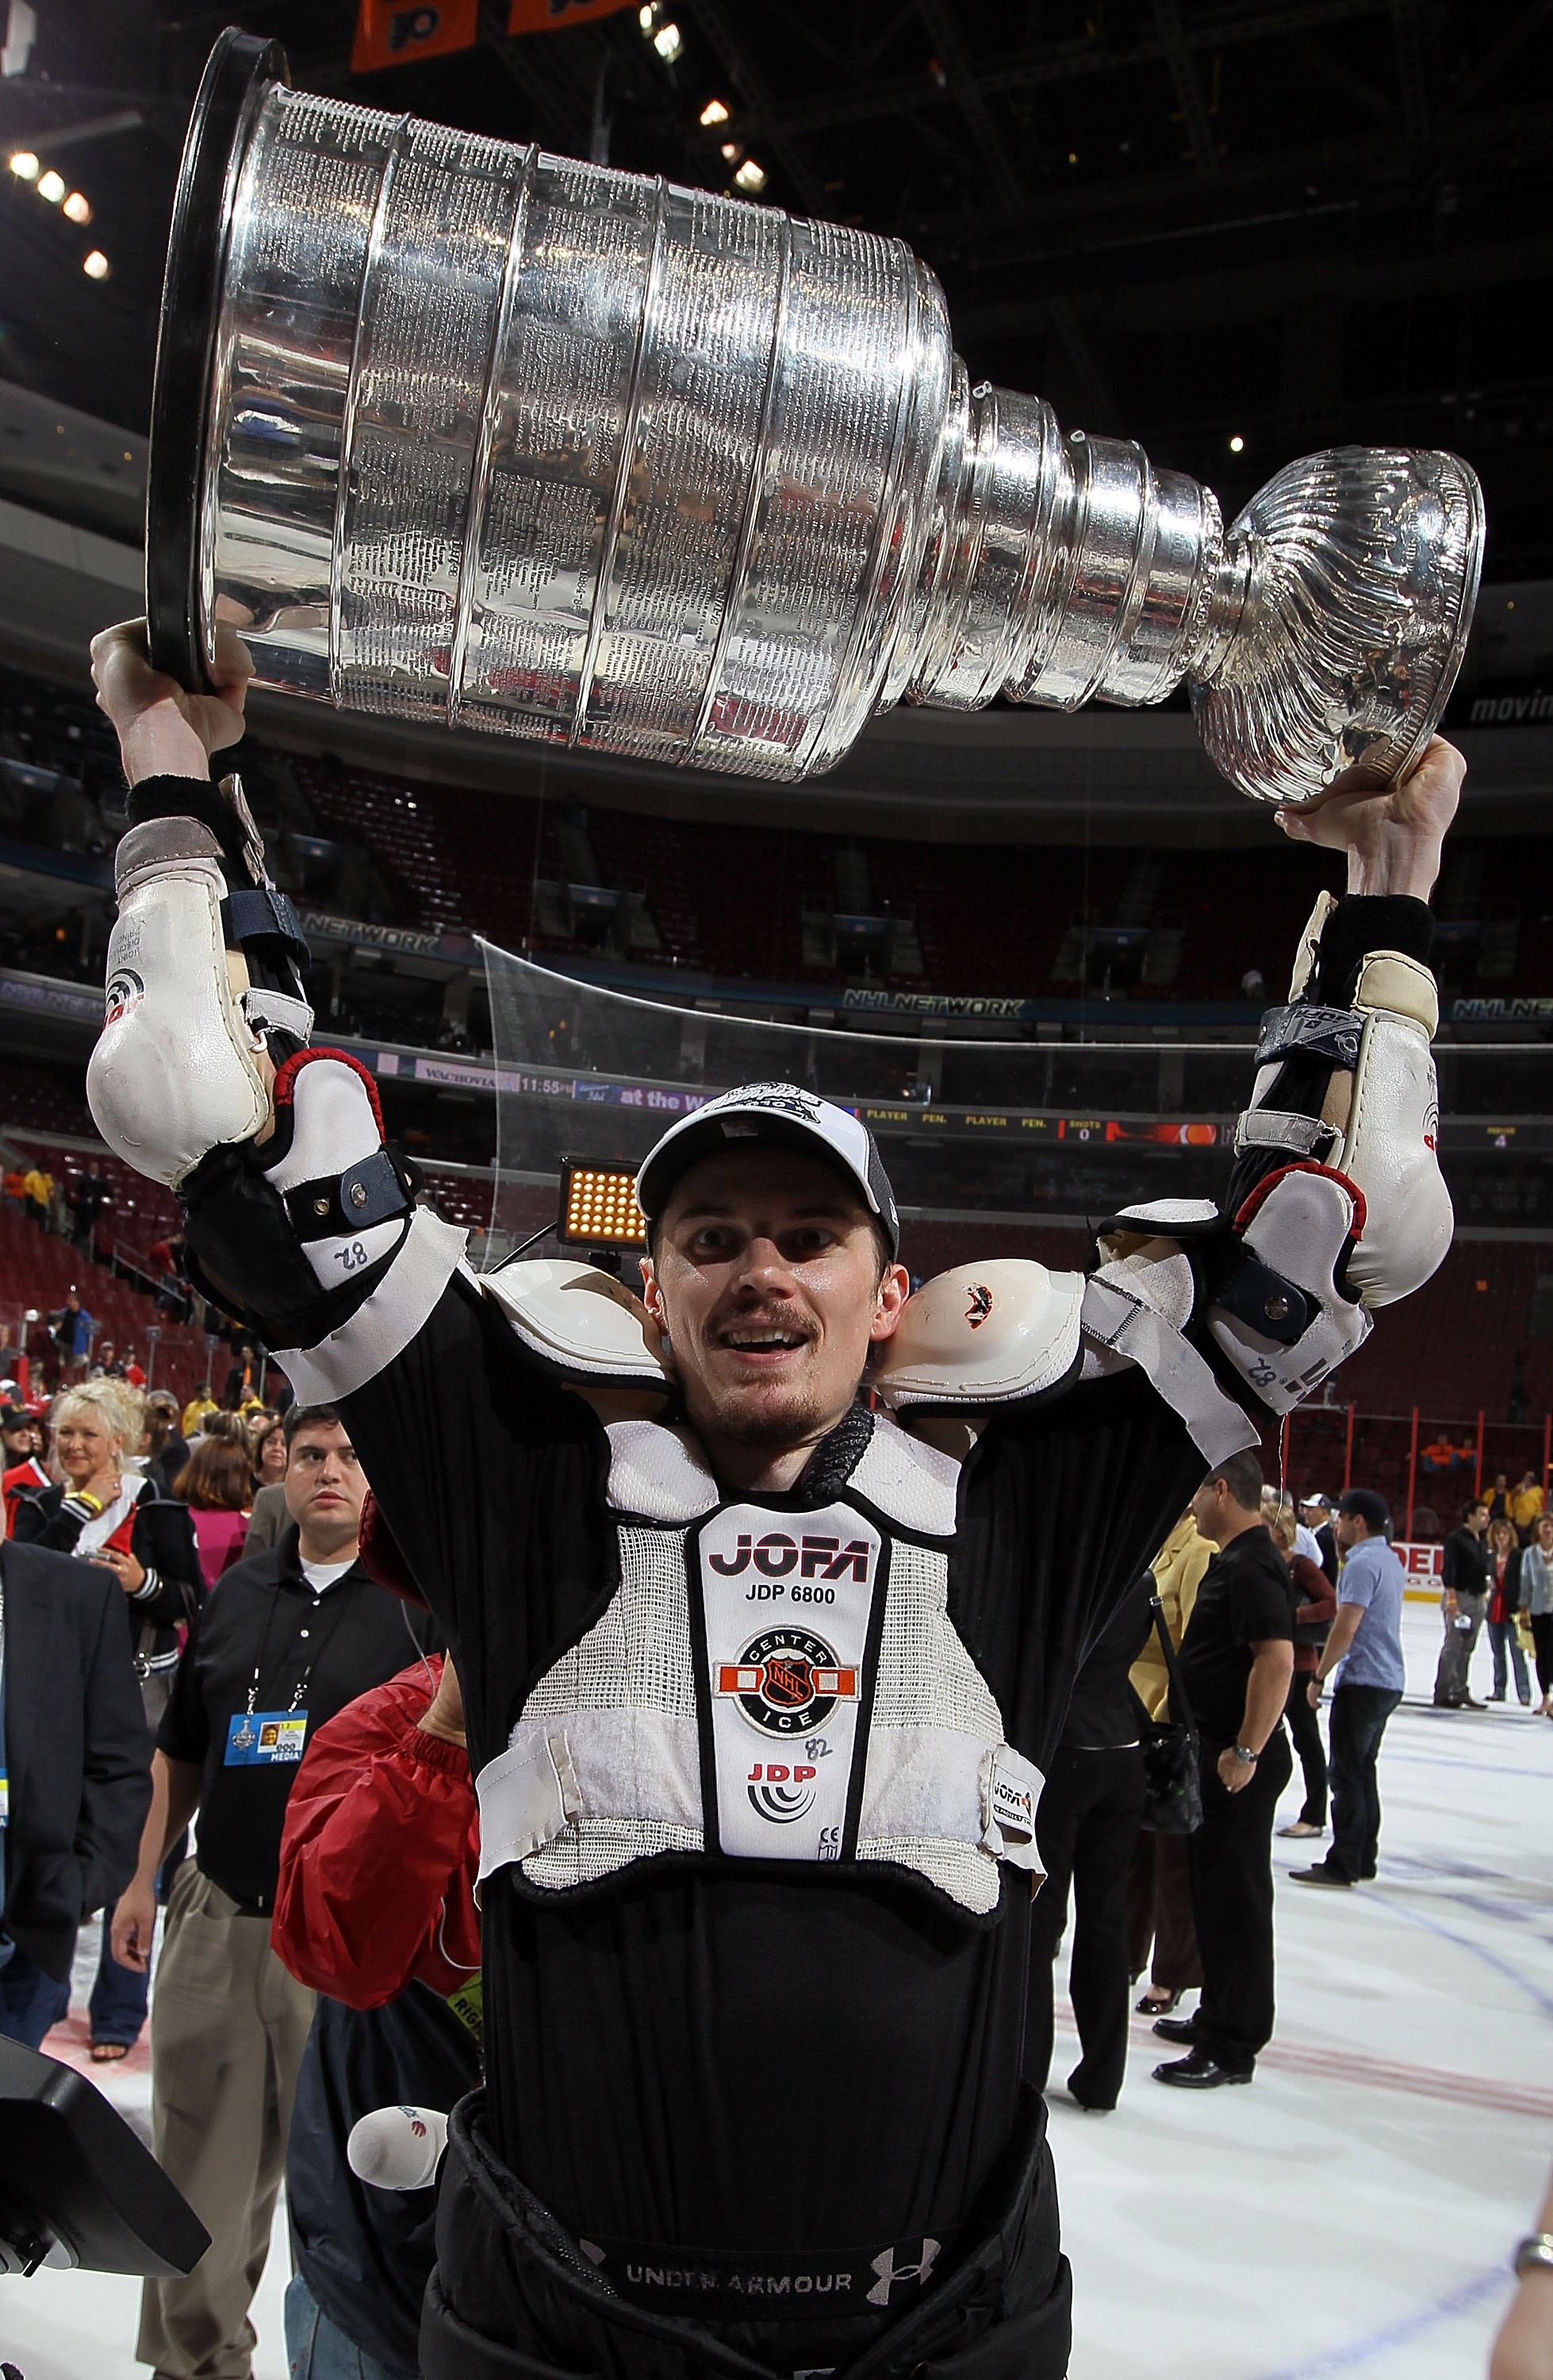 PHILADELPHIA - JUNE 09:  Tomas Kopecky #82 of the Chicago Blackhawks hoists the Stanley Cup after teammate Patrick Kane scored the game-winning goal in overtime to defeat the Philadelphia Flyers 4-3 and win the Stanley Cup in Game Six of the 2010 NHL Stan